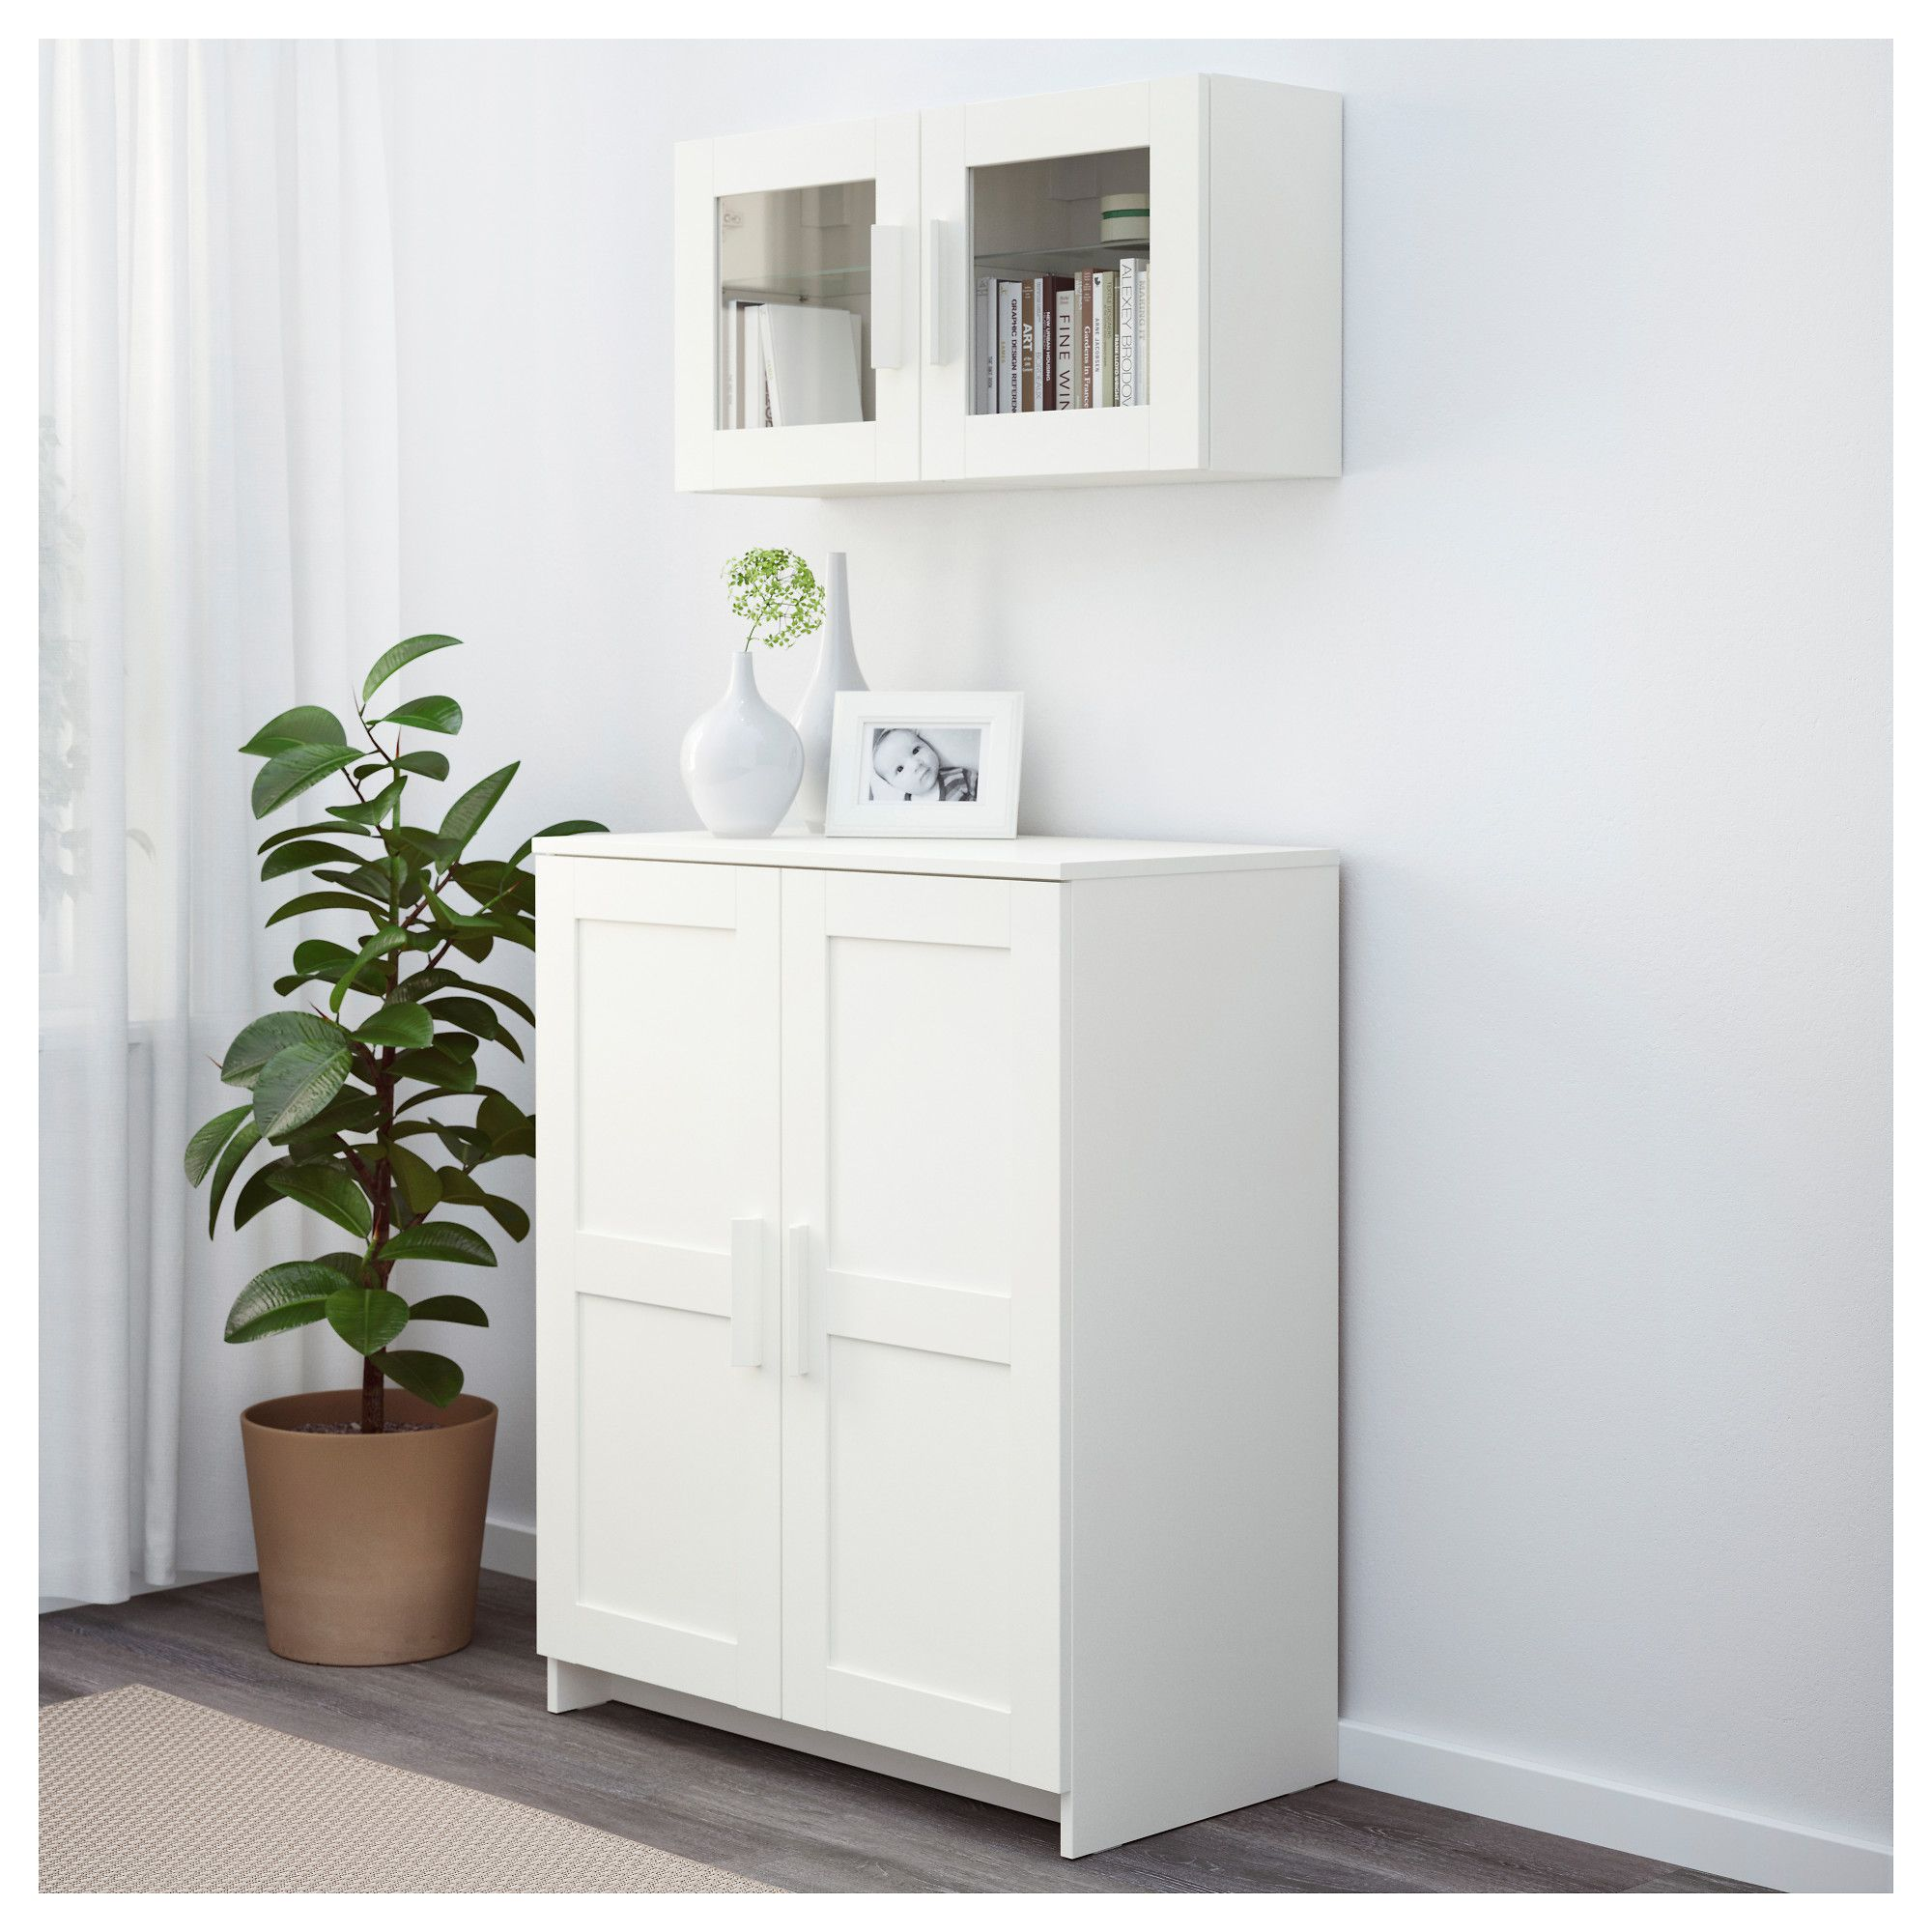 Bedroom Furniture Auckland: BRIMNES Cabinet With Doors White IKEA In 2019